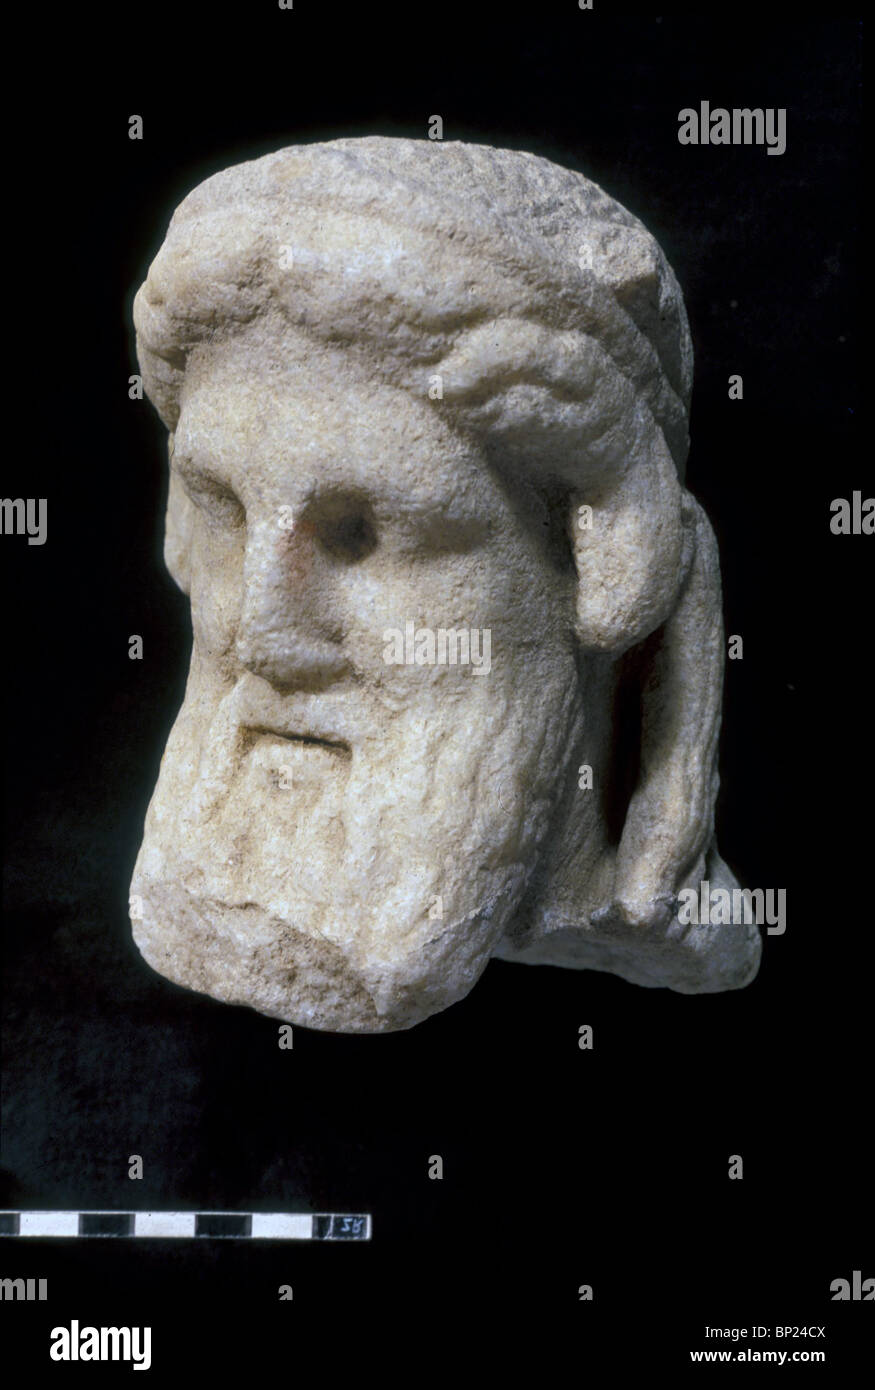 507. MARBLE BUST OF THE GREEK GOD ZEUSS EXCAVATED AT DOR - Stock Image